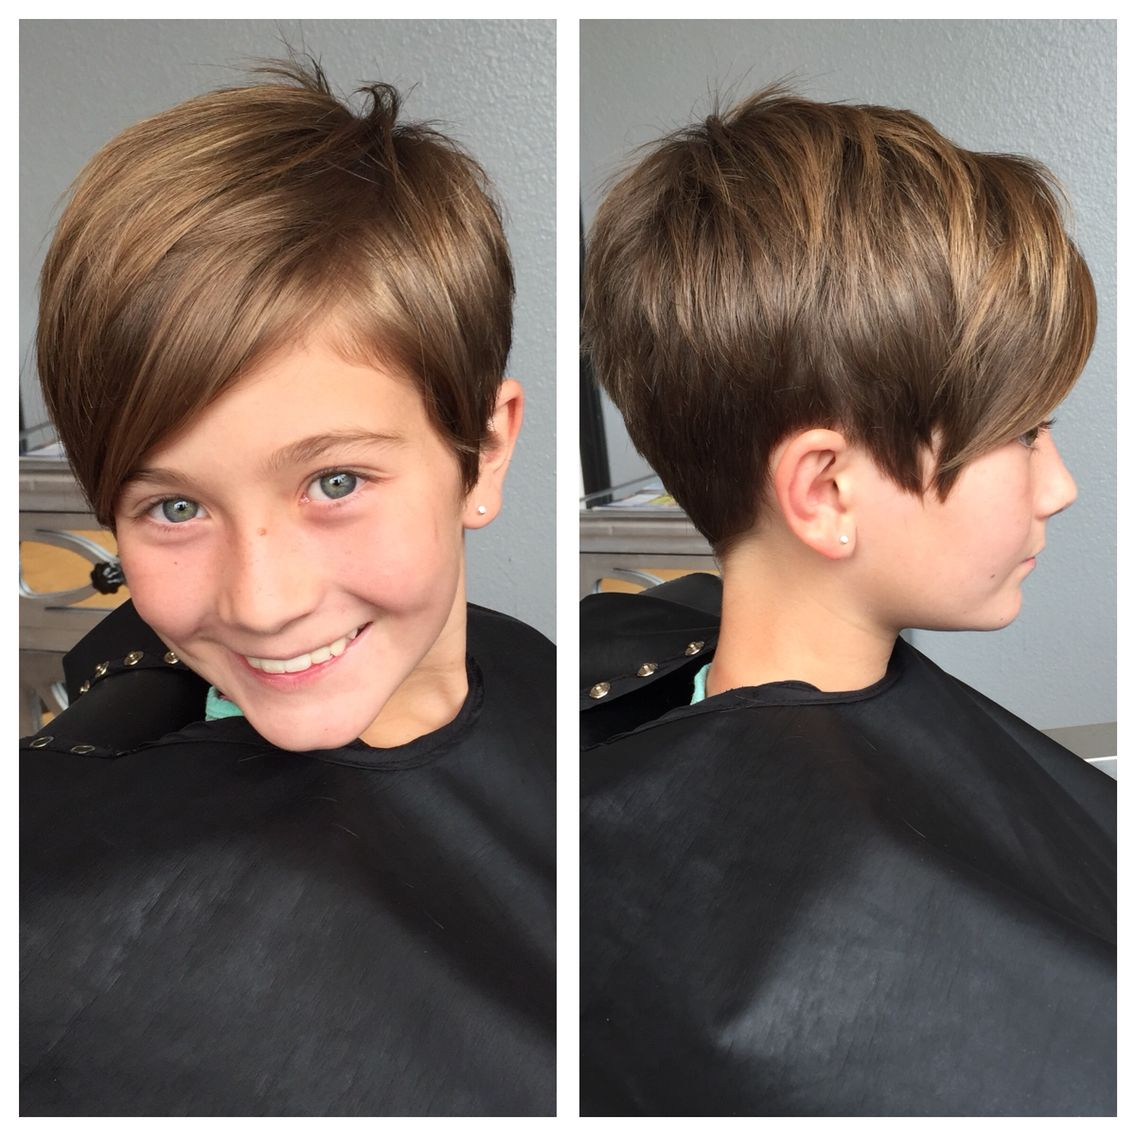 Kids Pixie Haircut Hair In 2019 Girls Pixie Haircut Short Hair